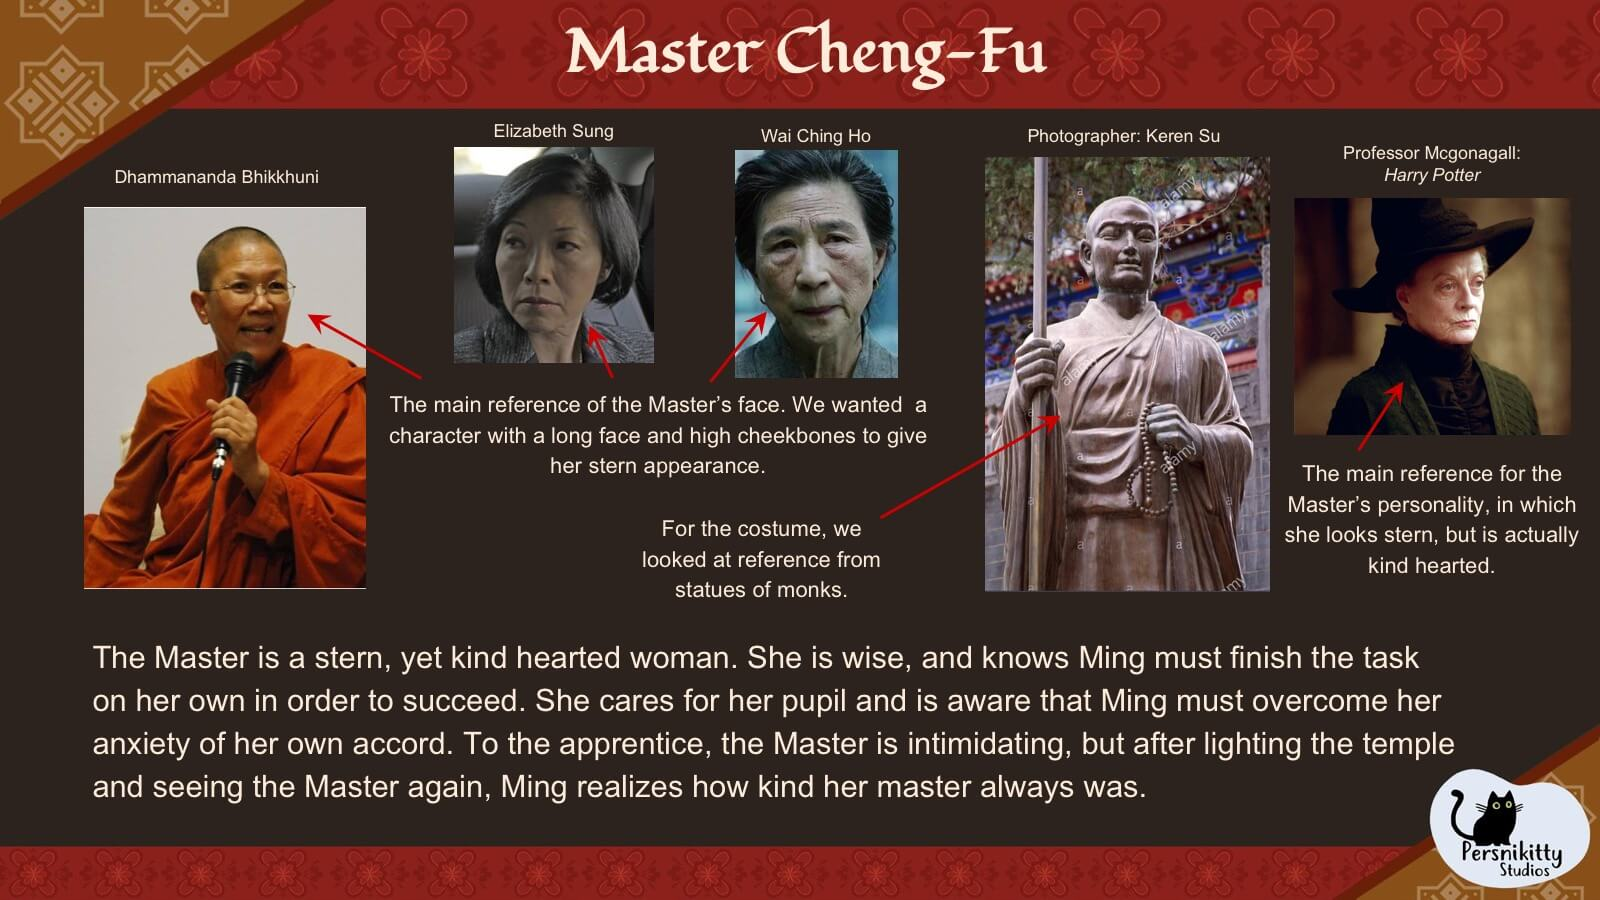 A slide outlining the visual style references for Ming's master, Cheng-Fu.